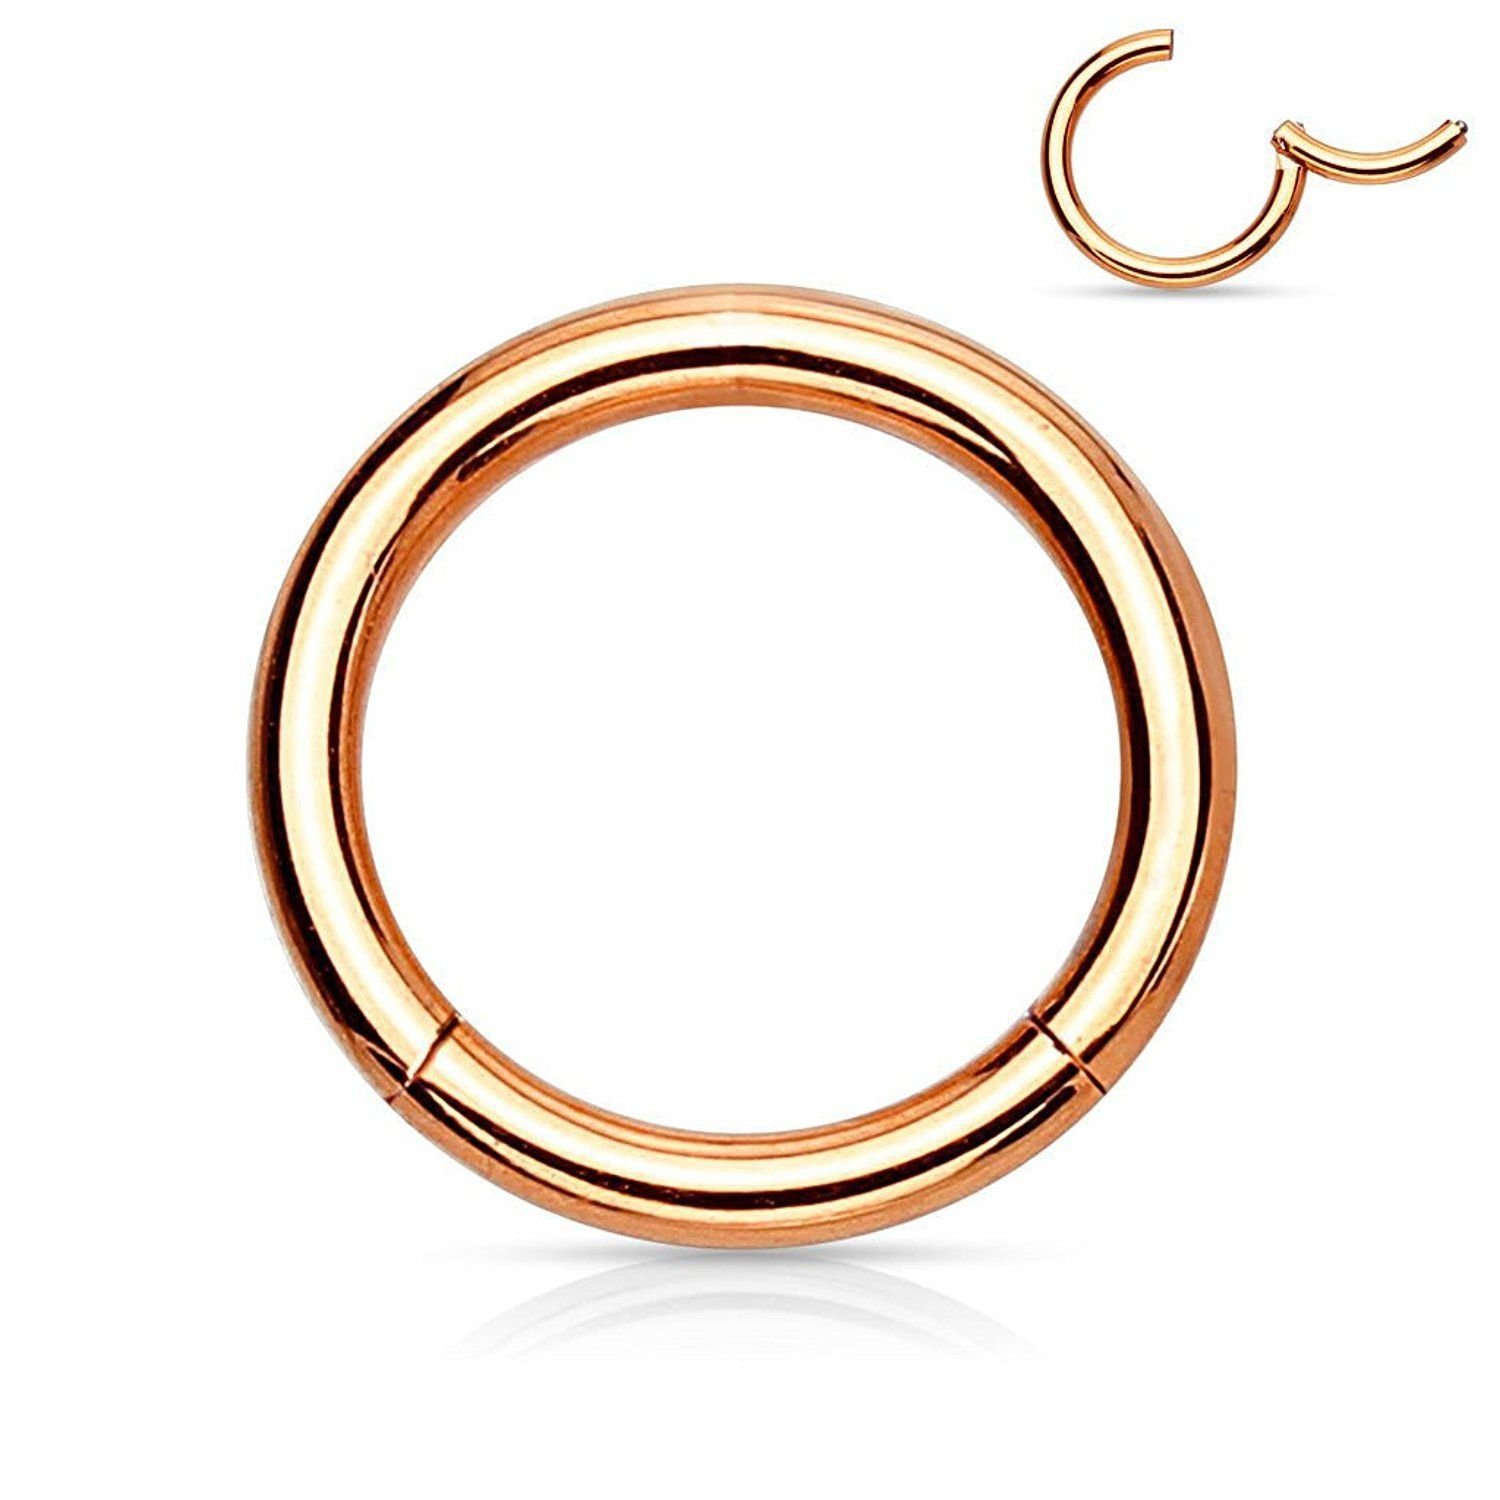 Steel Rose Gold IP Hinged Clicker Segment Septum Lip Nose Hoop Ring Helix Daith Cartilage Tragus 20G-18G-16G-14G-12G-10G All Lengths Available B07CGM4R8M 18GA (1mm) 6mm  18GA (1mm) 6mm